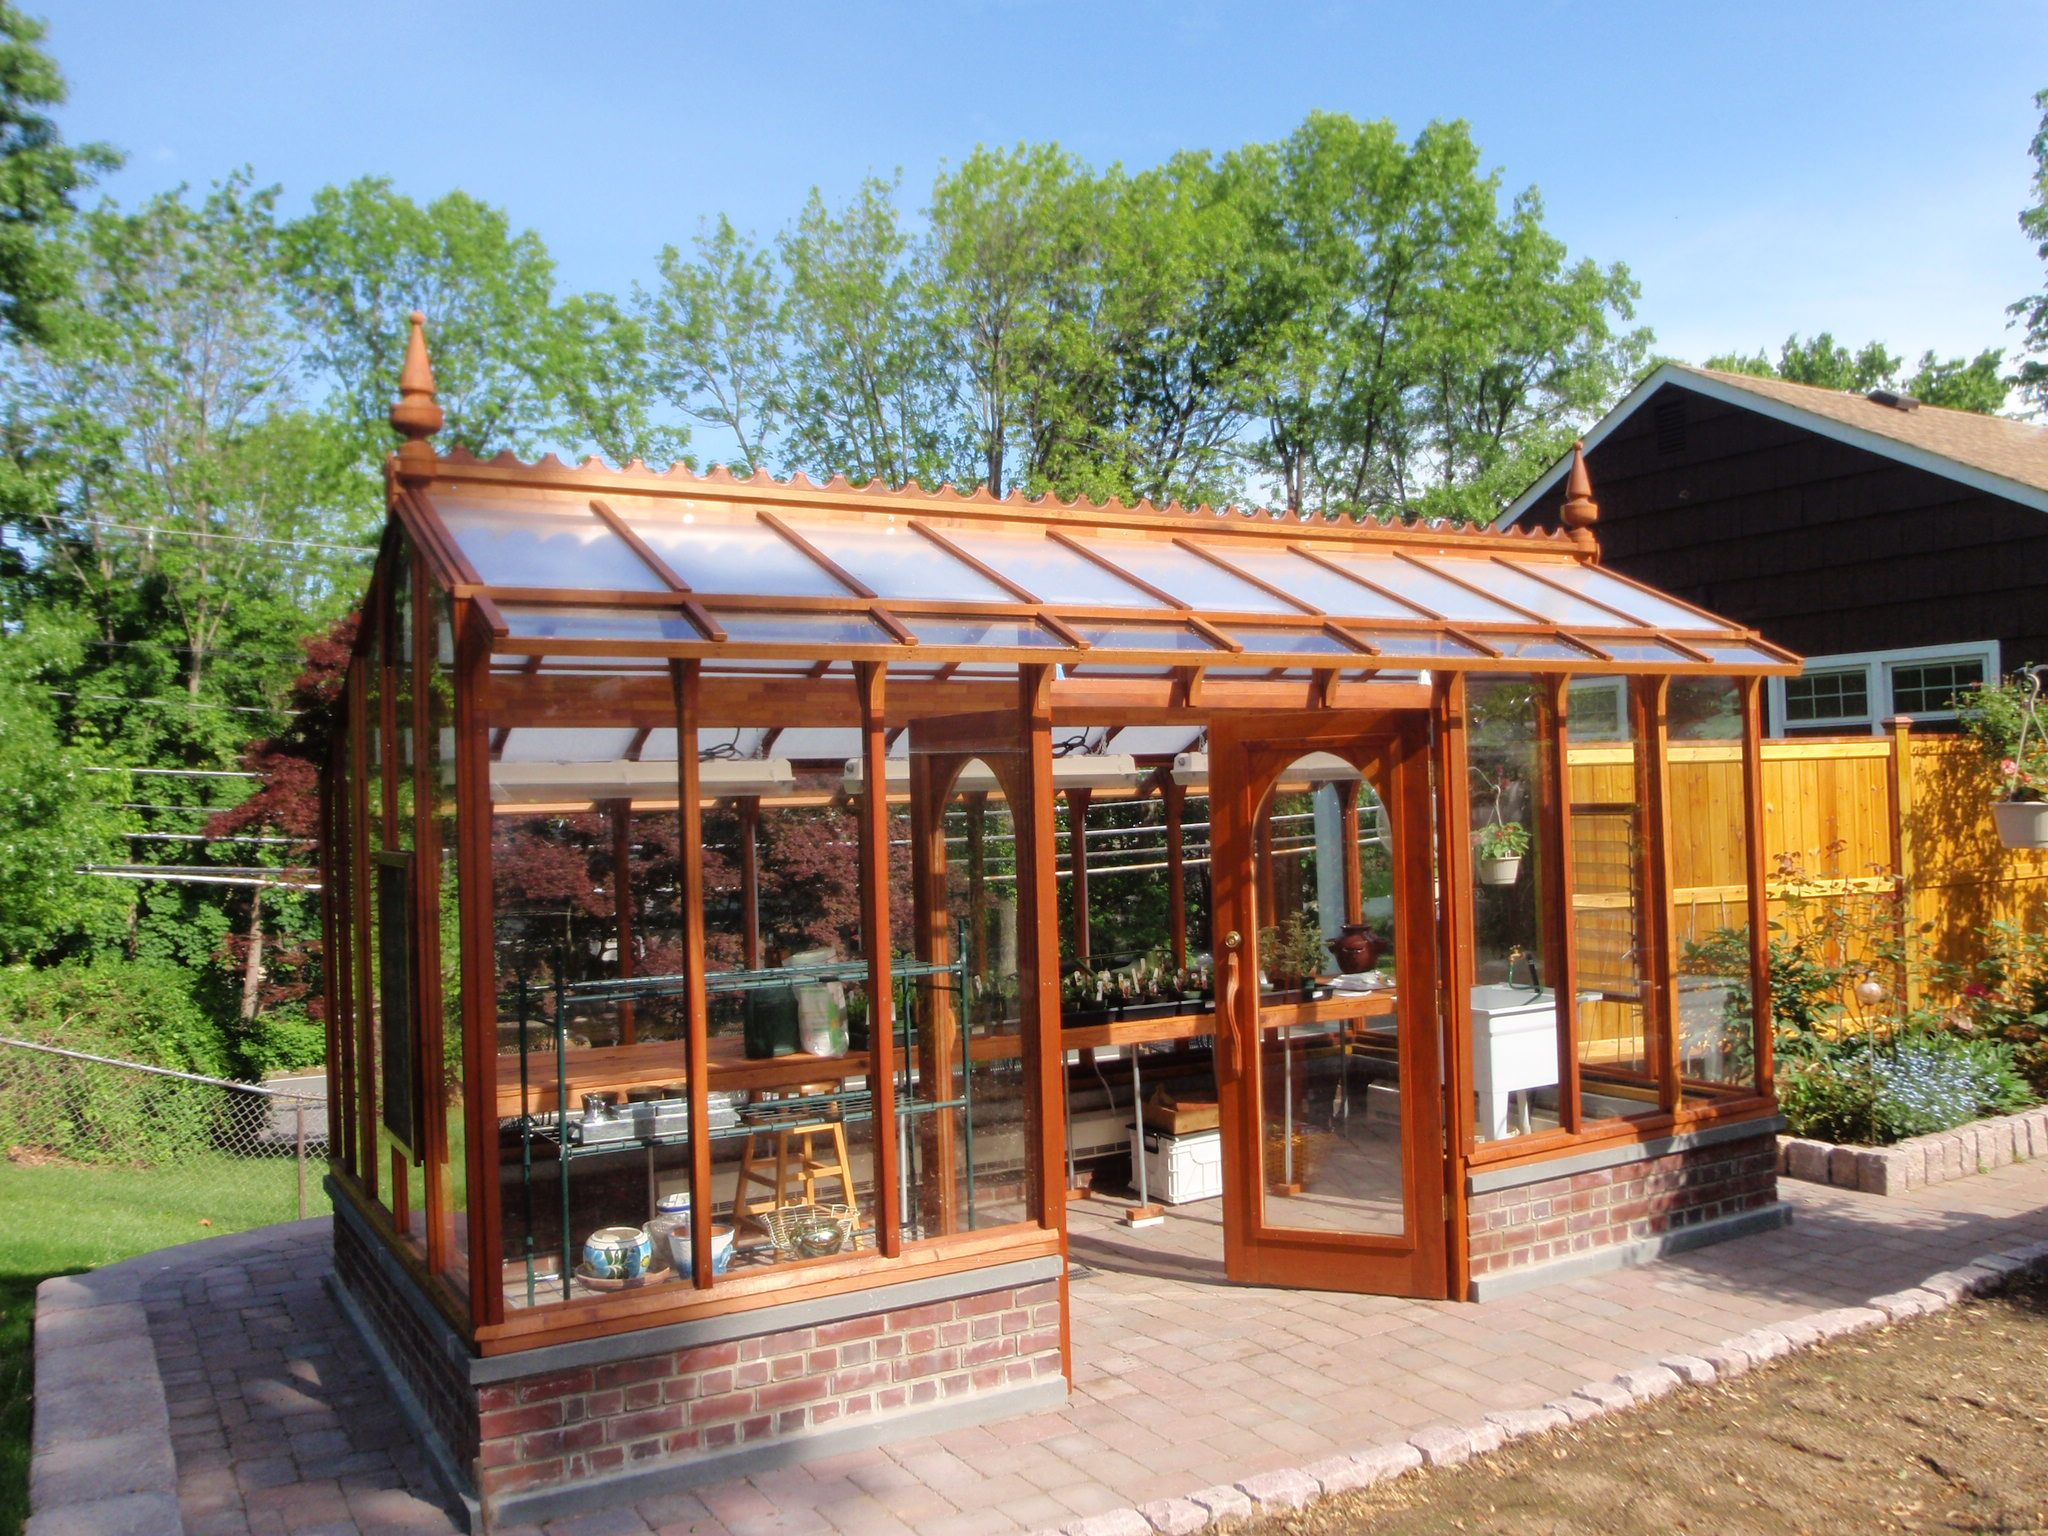 Superb Nantucket Greenhouse With Floor That Transitions Seamlessly To The  Surrounding Patio.